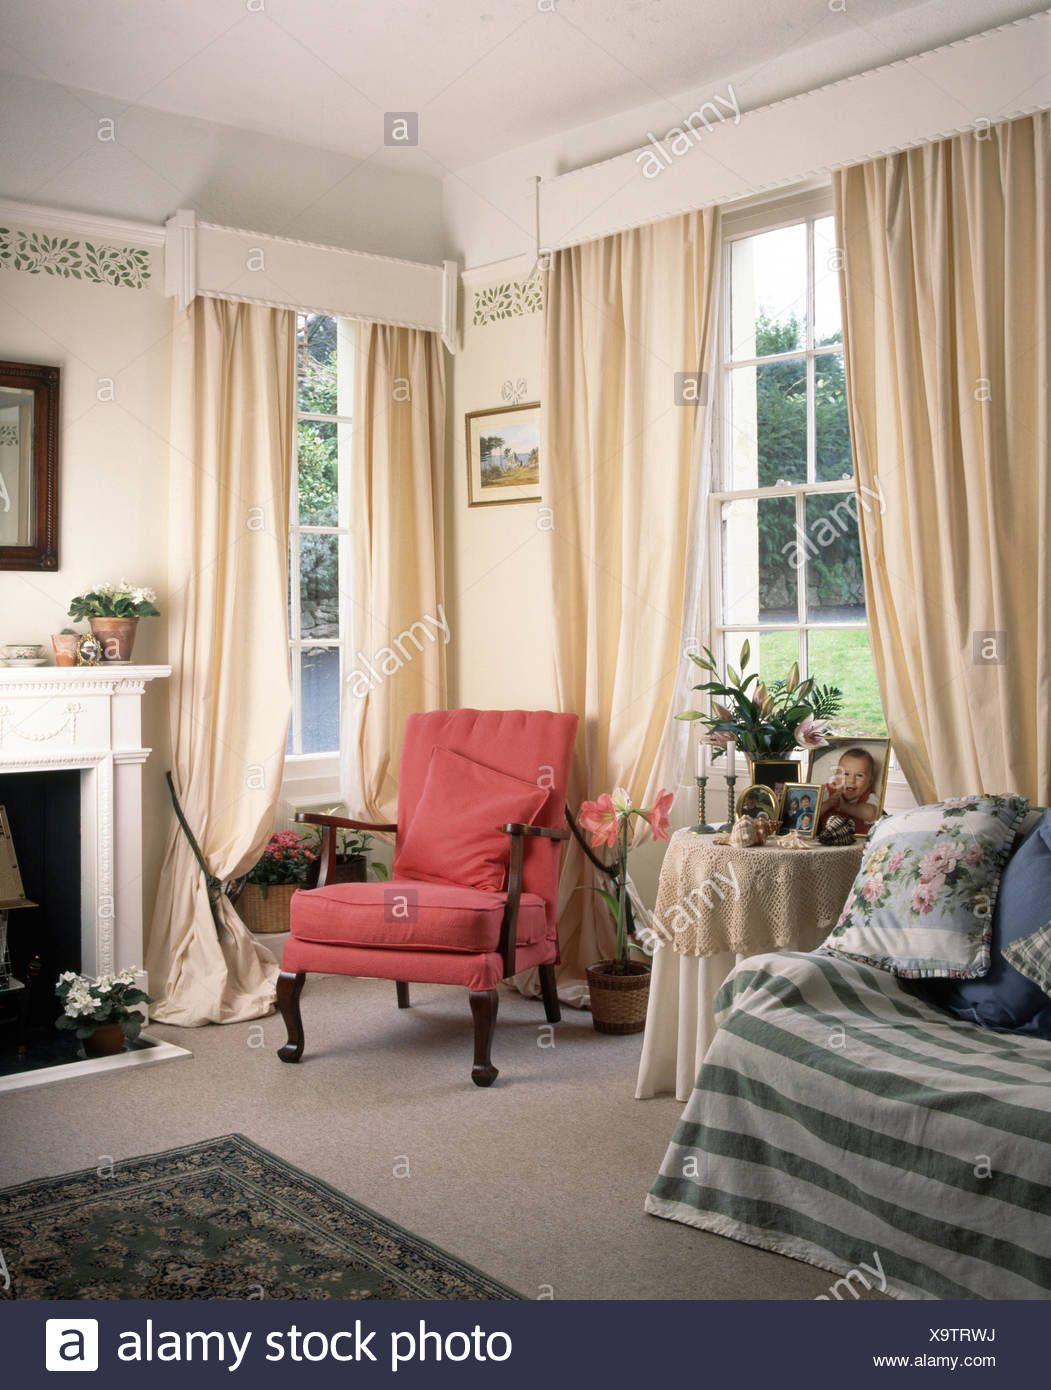 Pink Living Room Curtains Pink Chair Between Windows With Cream Curtains In Nineties Living